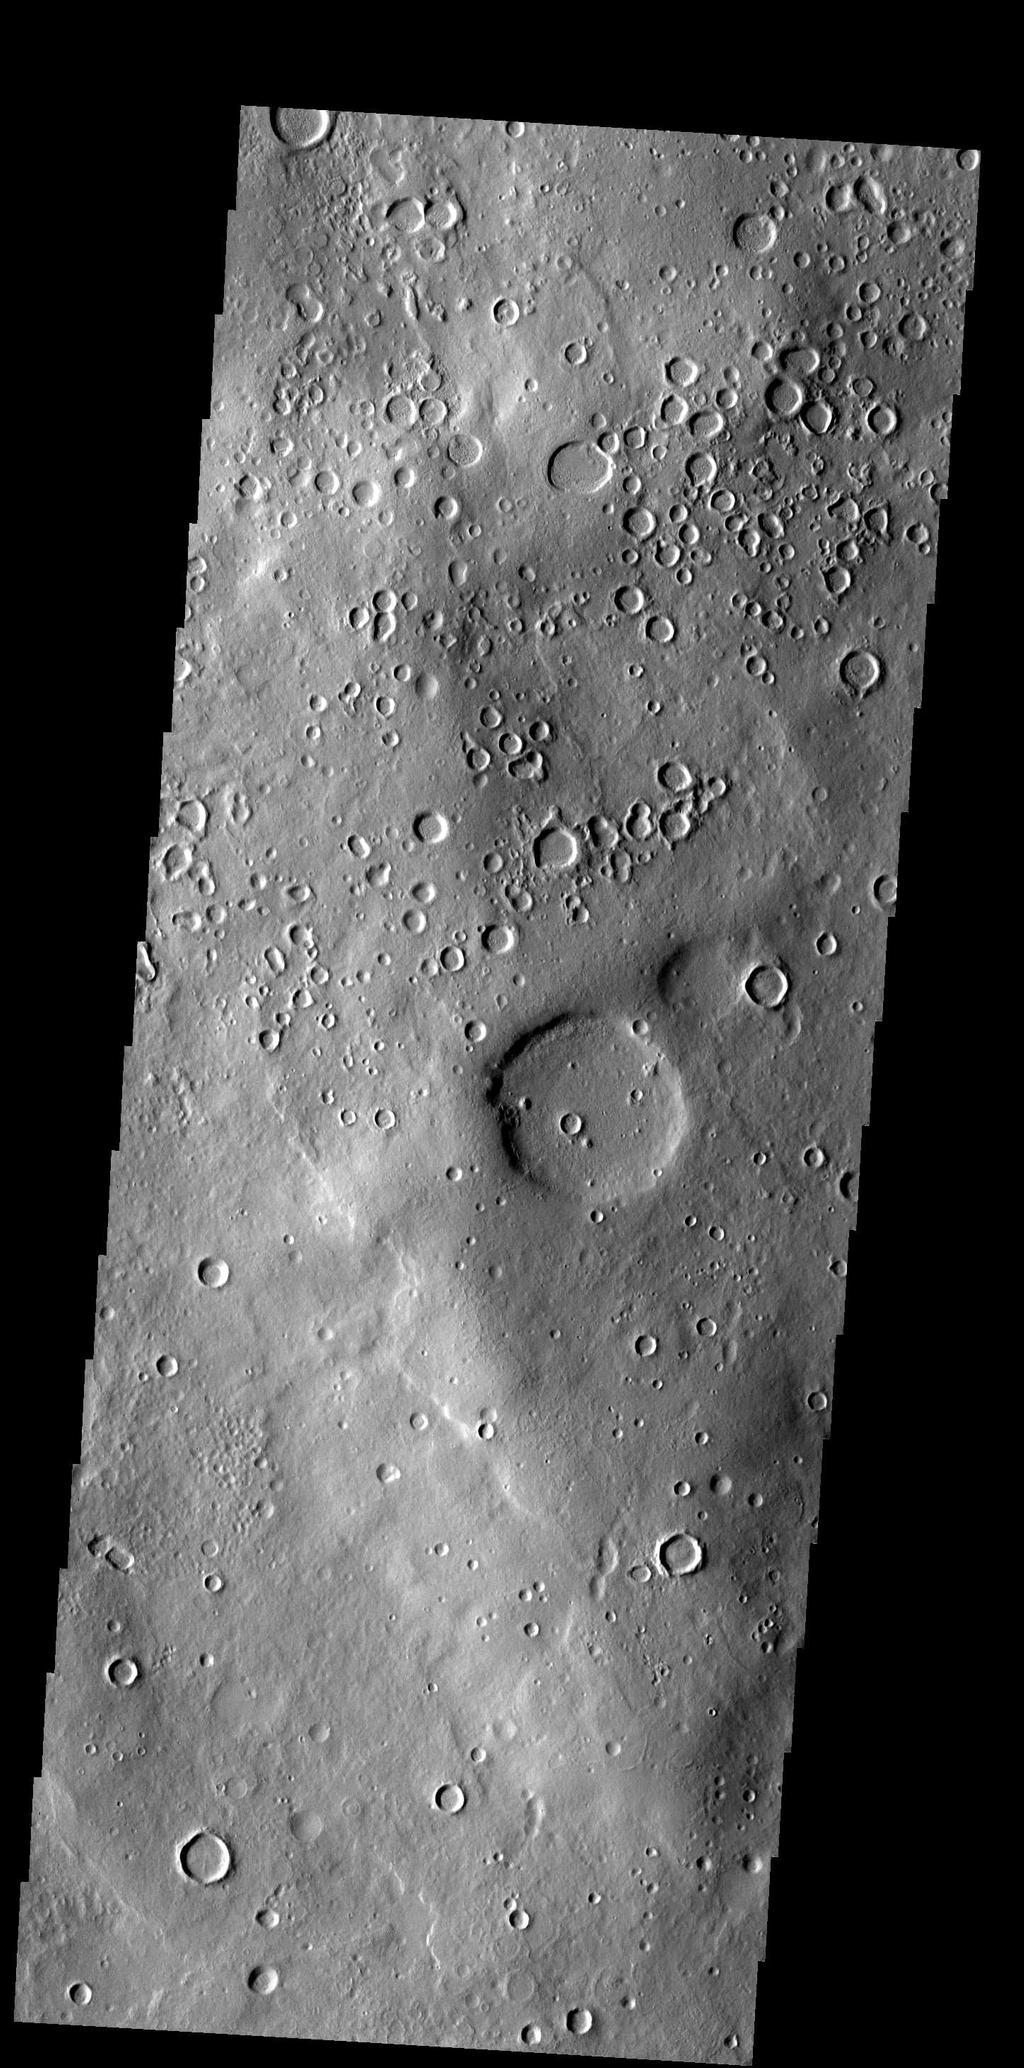 This region of Terra Sabaea contains areas with high densities of small craters.